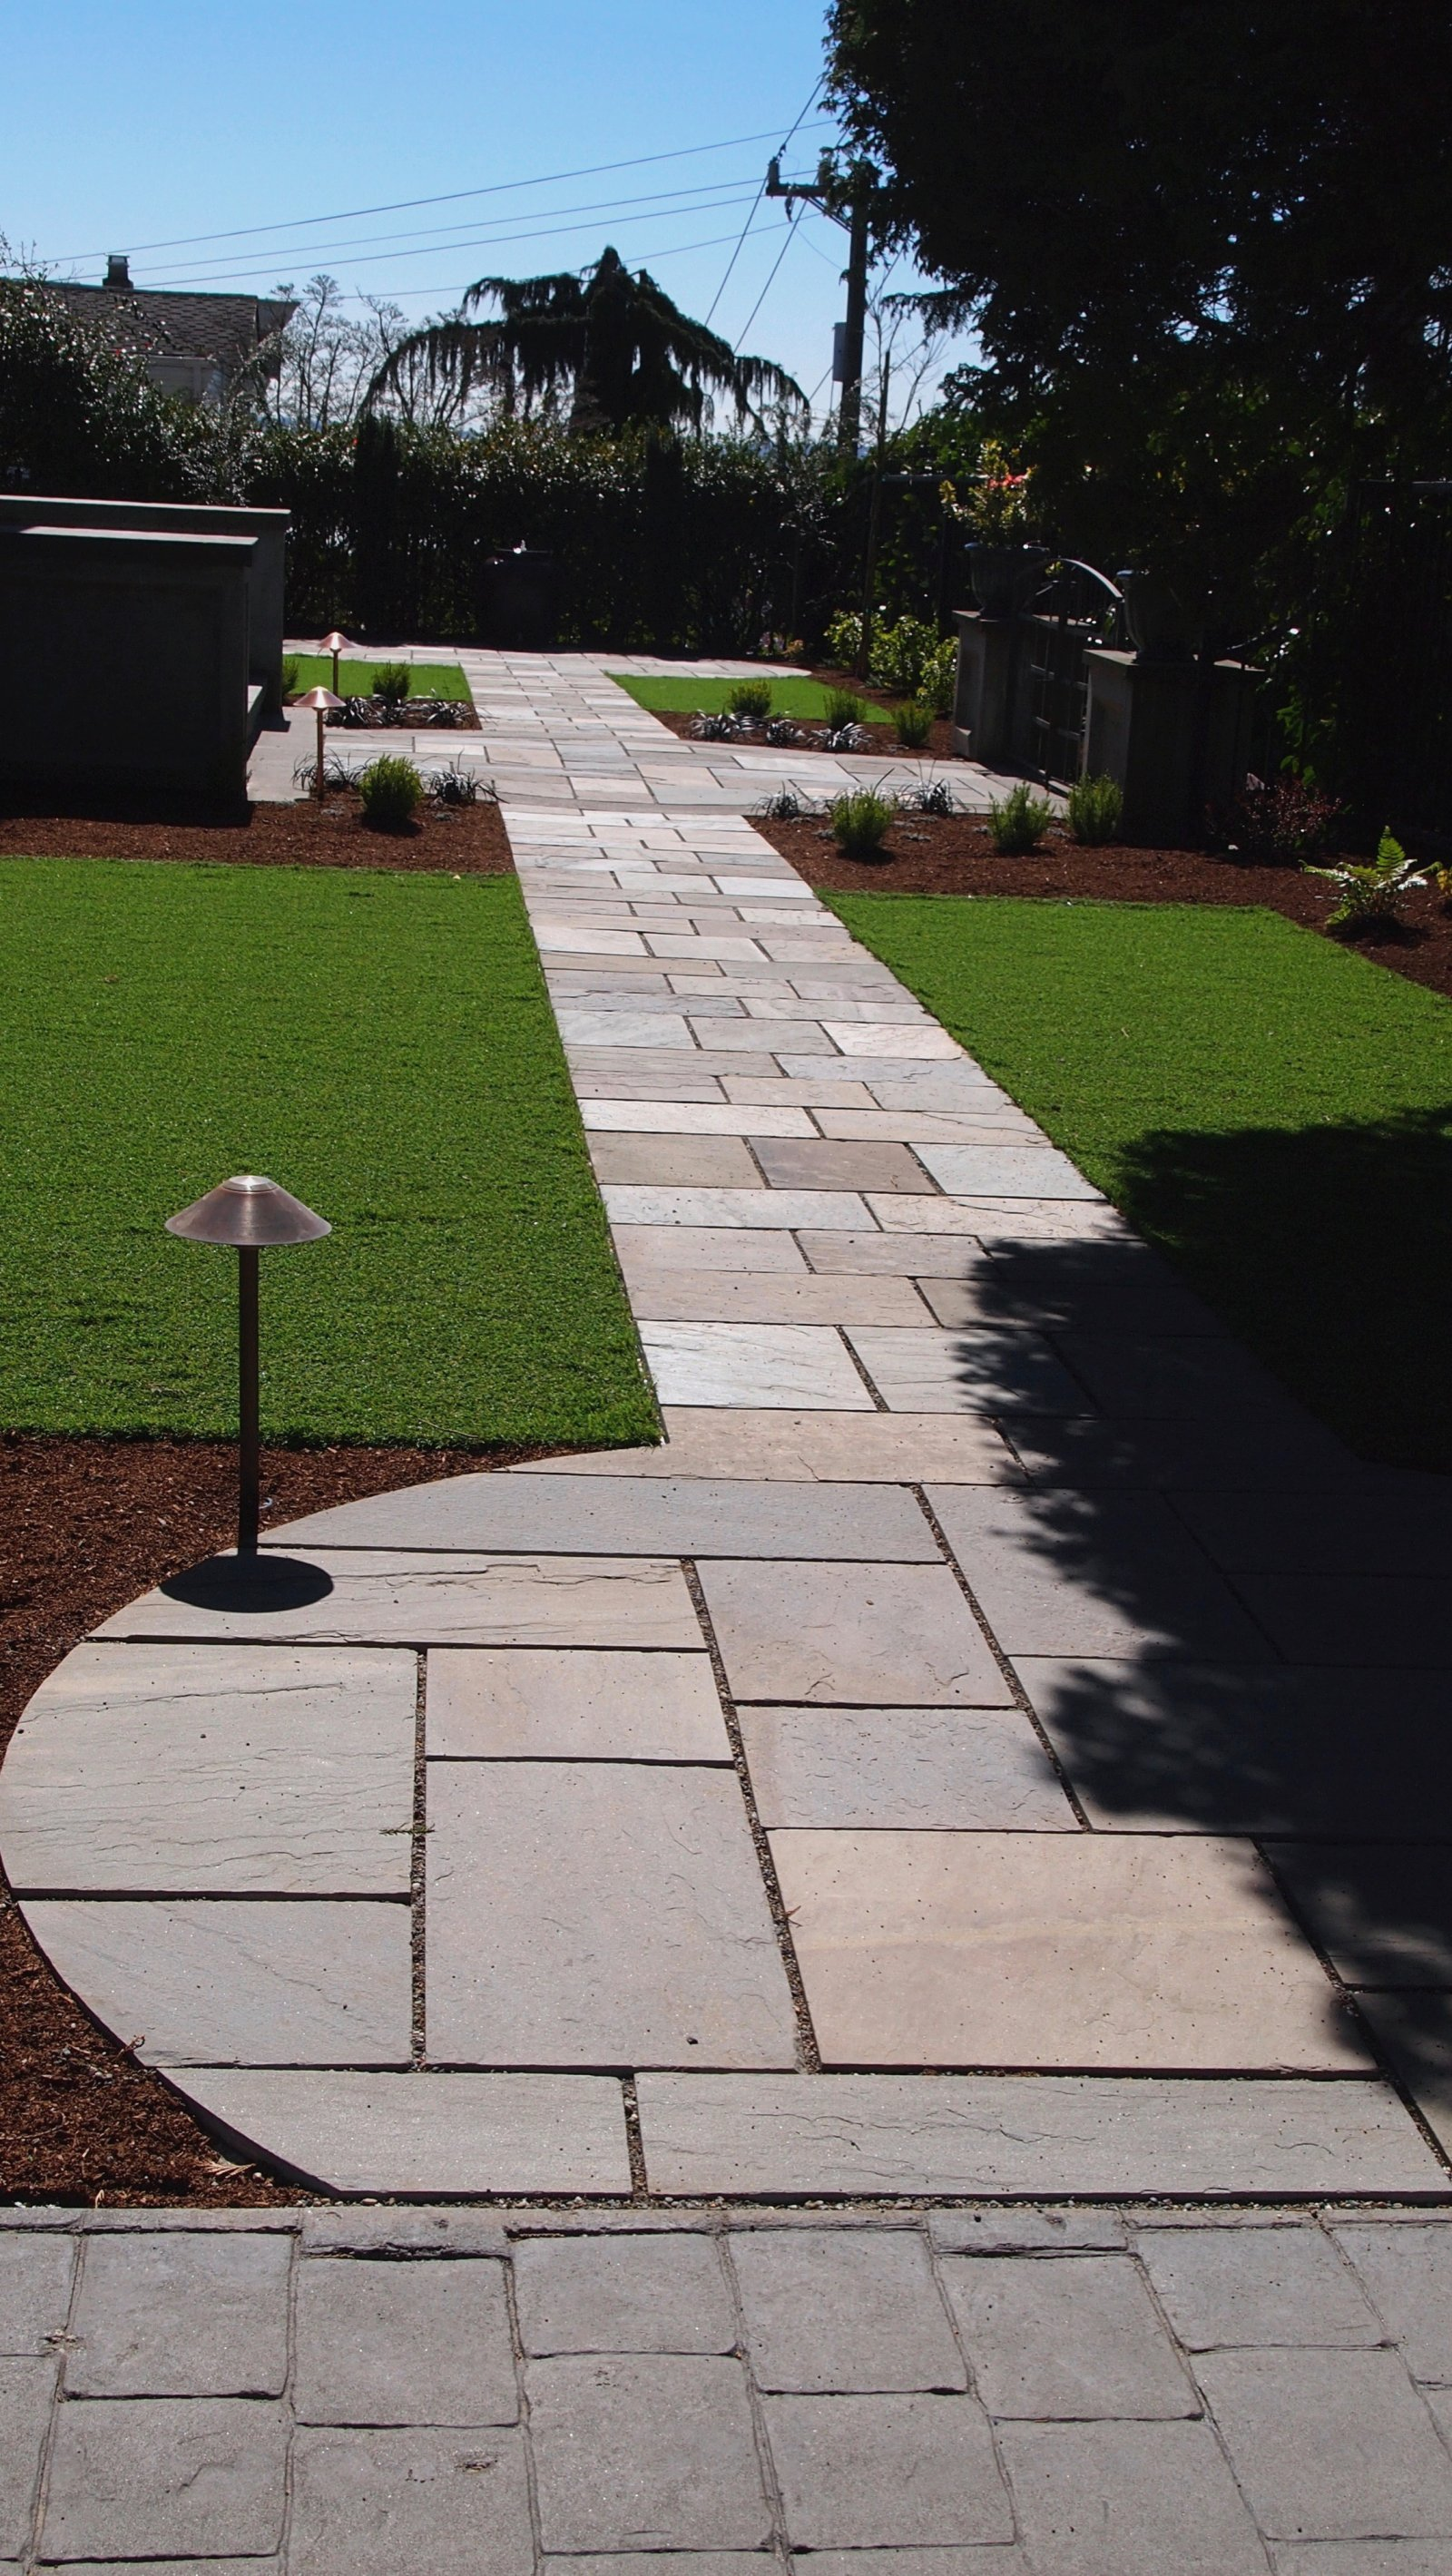 BLUESTONE PATHWAYS AND SYNTHETIC TURF FOR KIDS AND DOGS